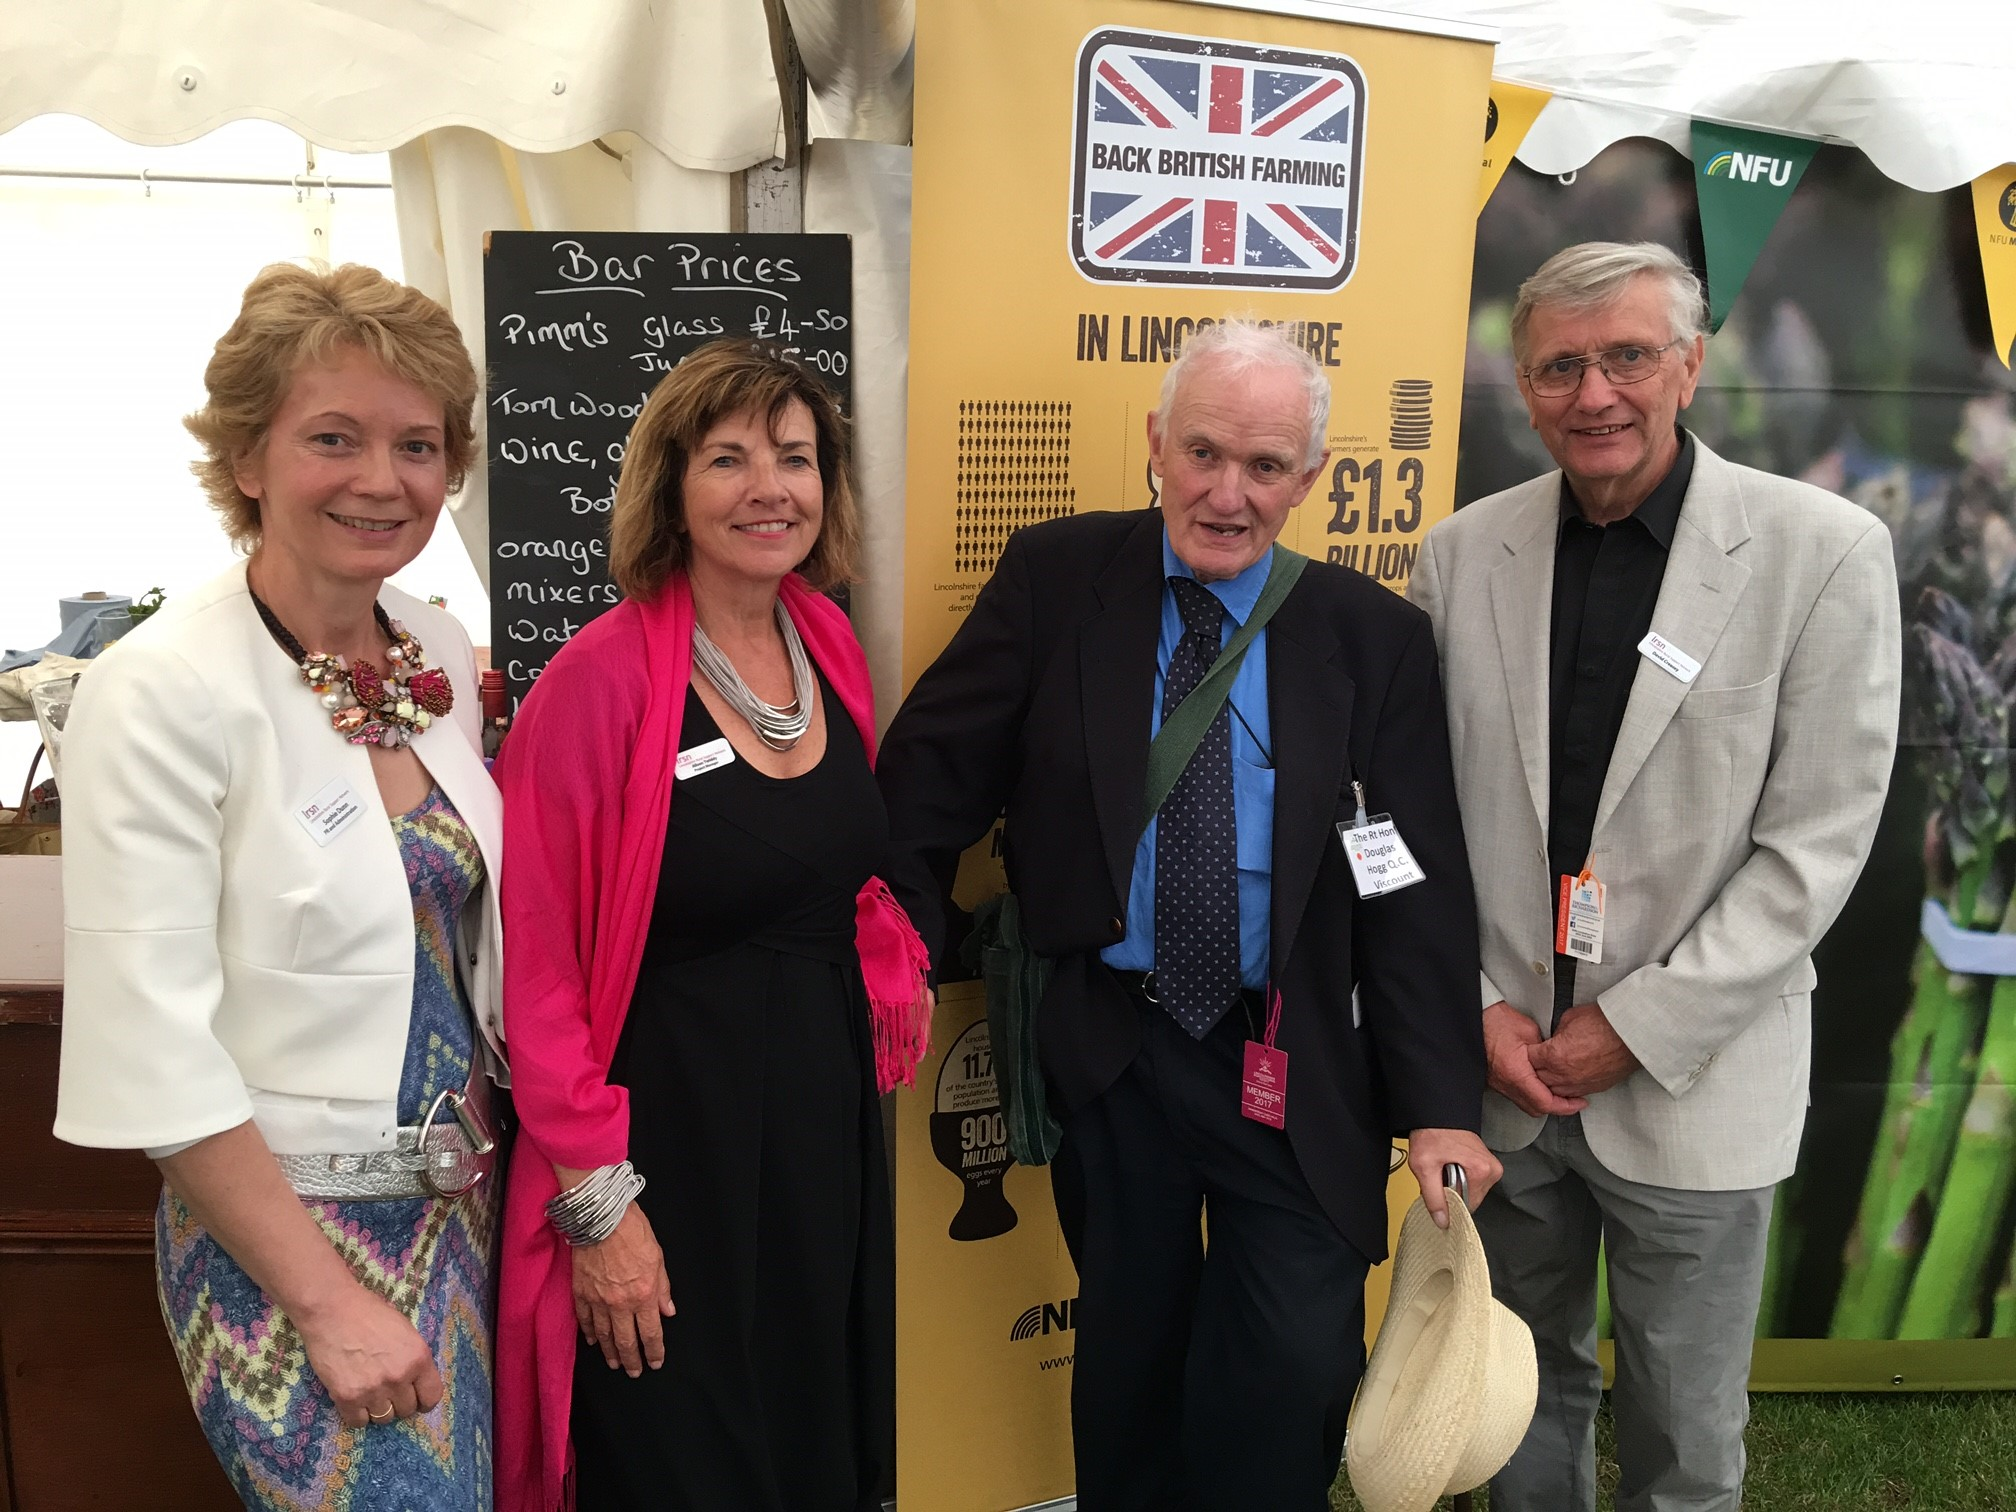 LRSN's David Creasey, Alison Twiddy and Sophie Dunn meeting Douglas Hogg in the NFU marquee